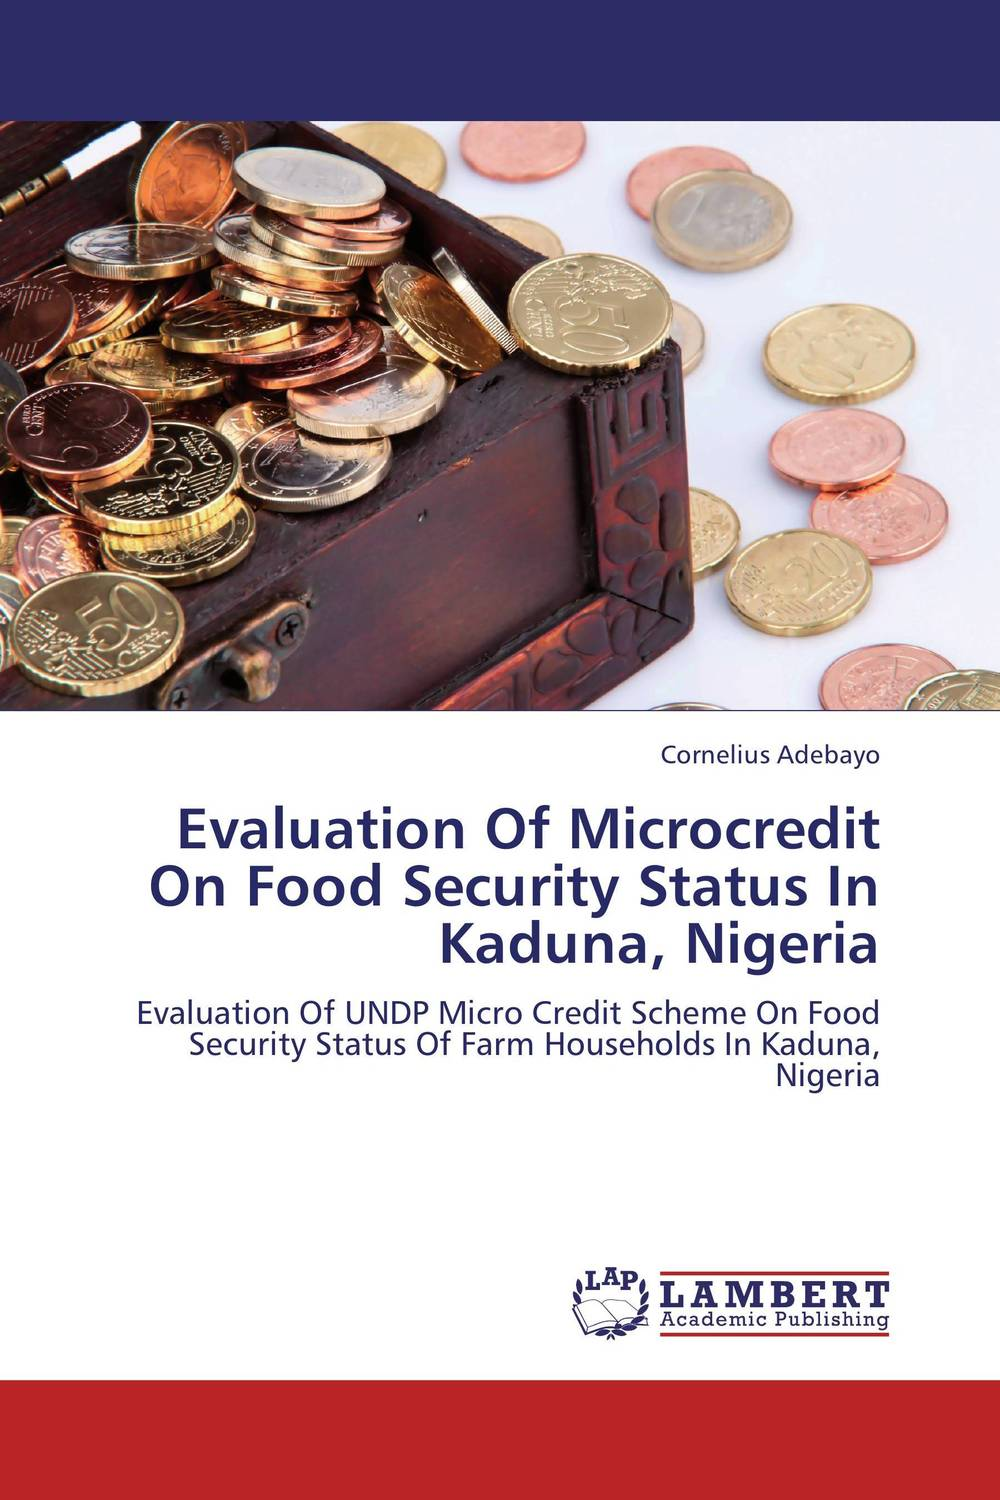 Evaluation Of Microcredit On Food Security Status In Kaduna, Nigeria impact of livelihood diversification on food security